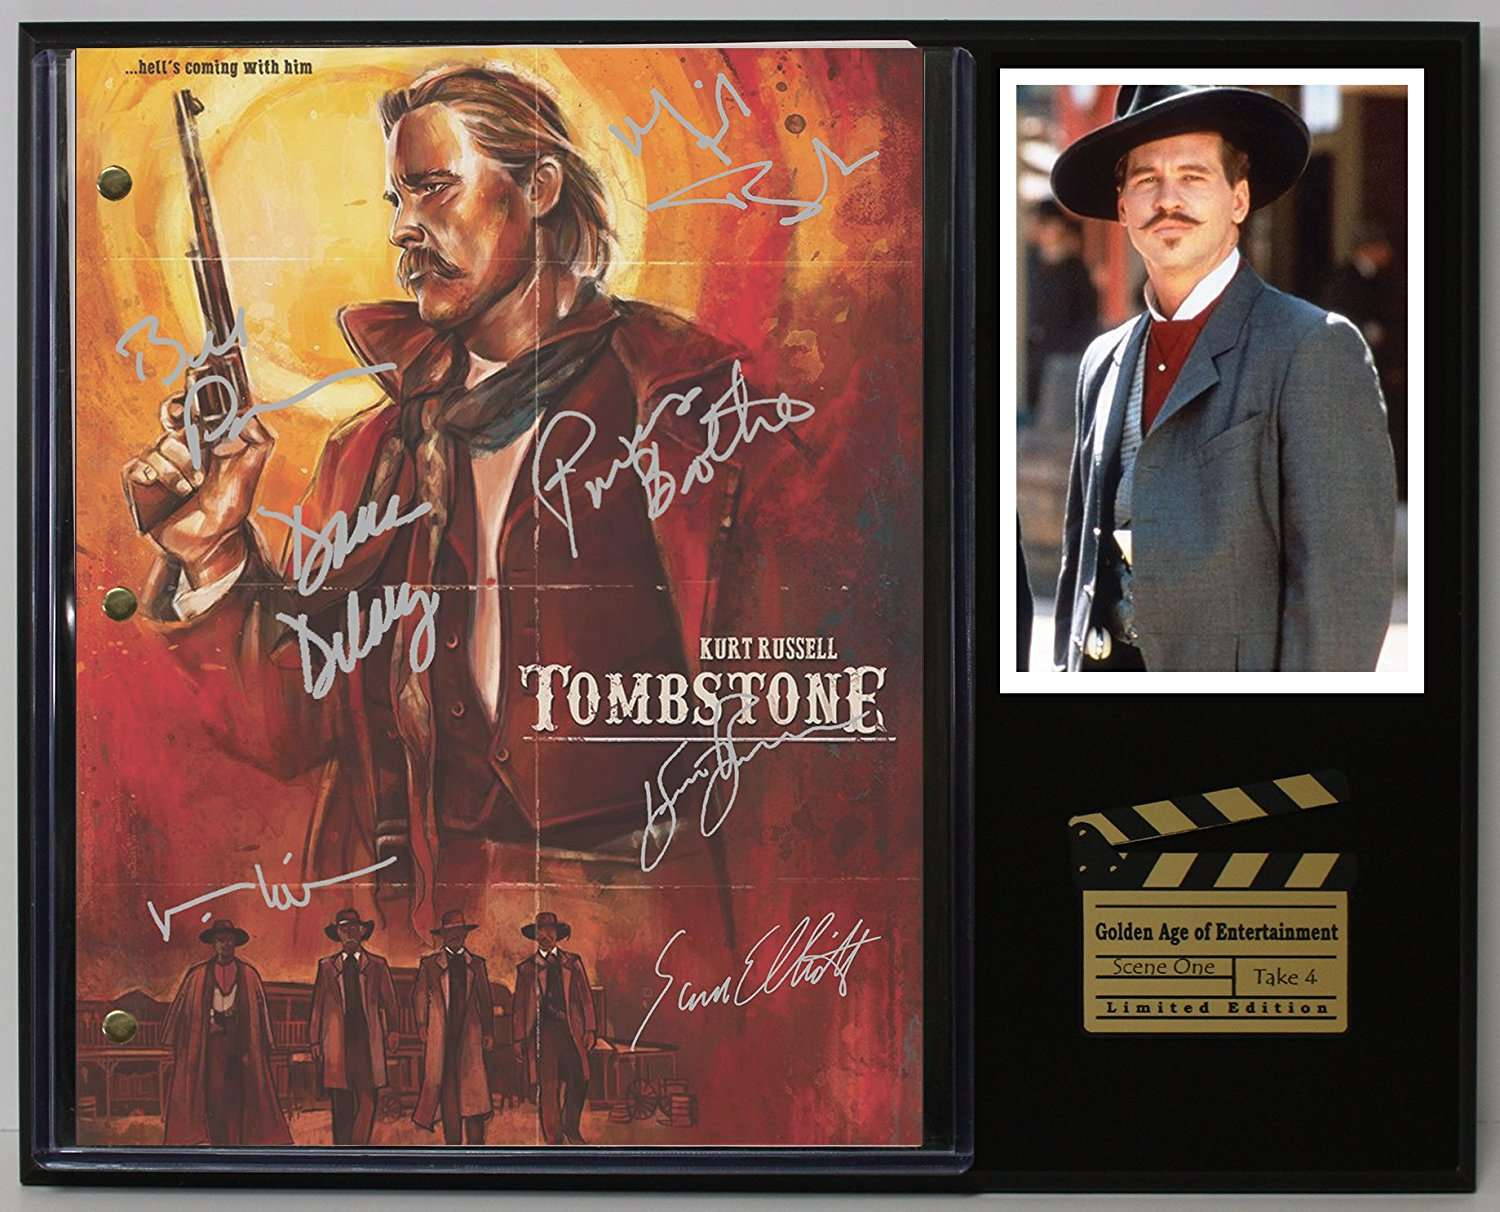 Tombstone Ltd Edition Reproduction Movie Script Cinema Display C3